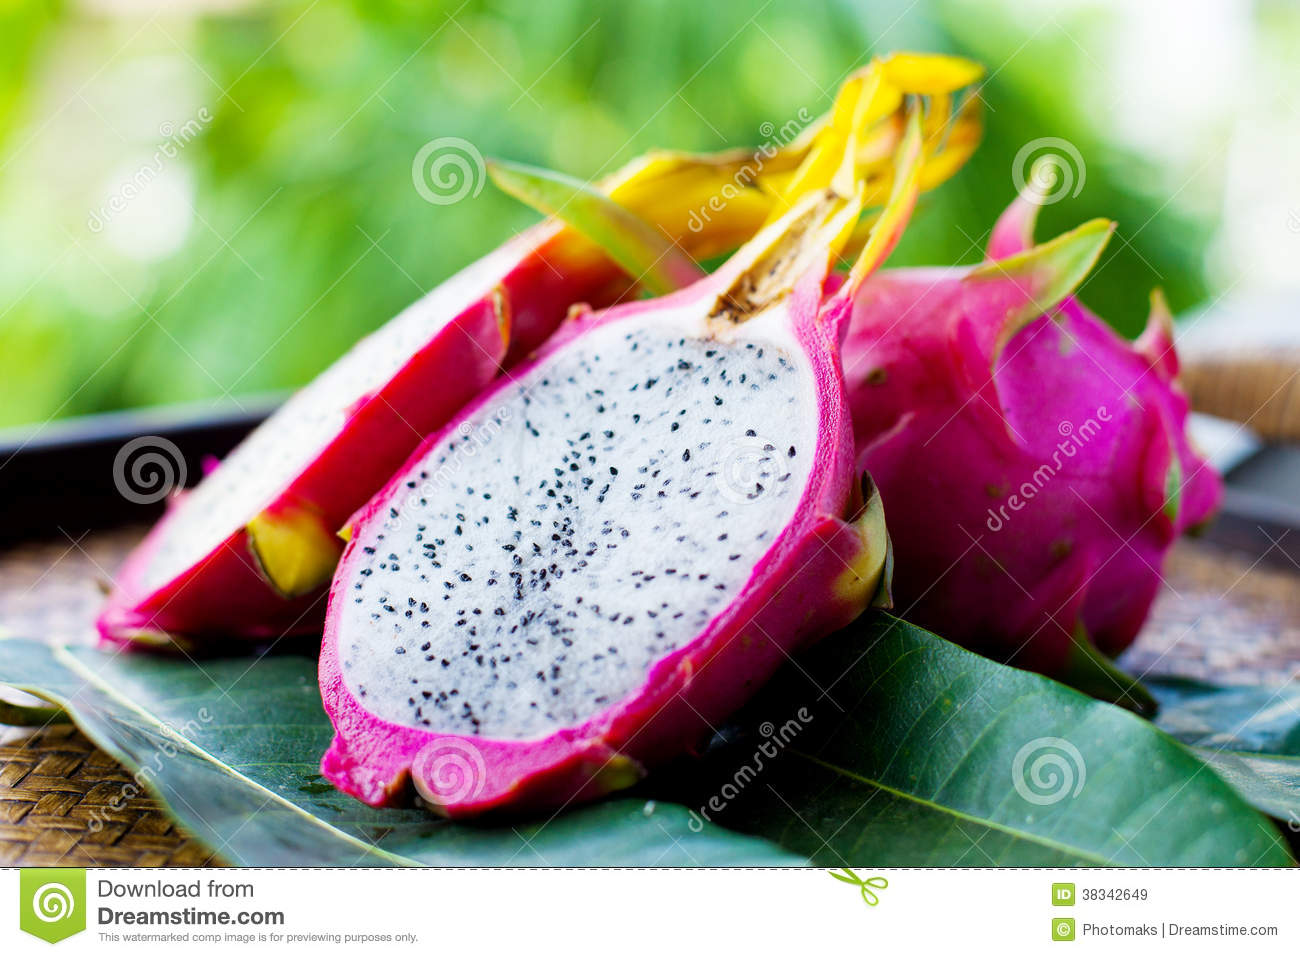 how to cut pitaya to make cuys